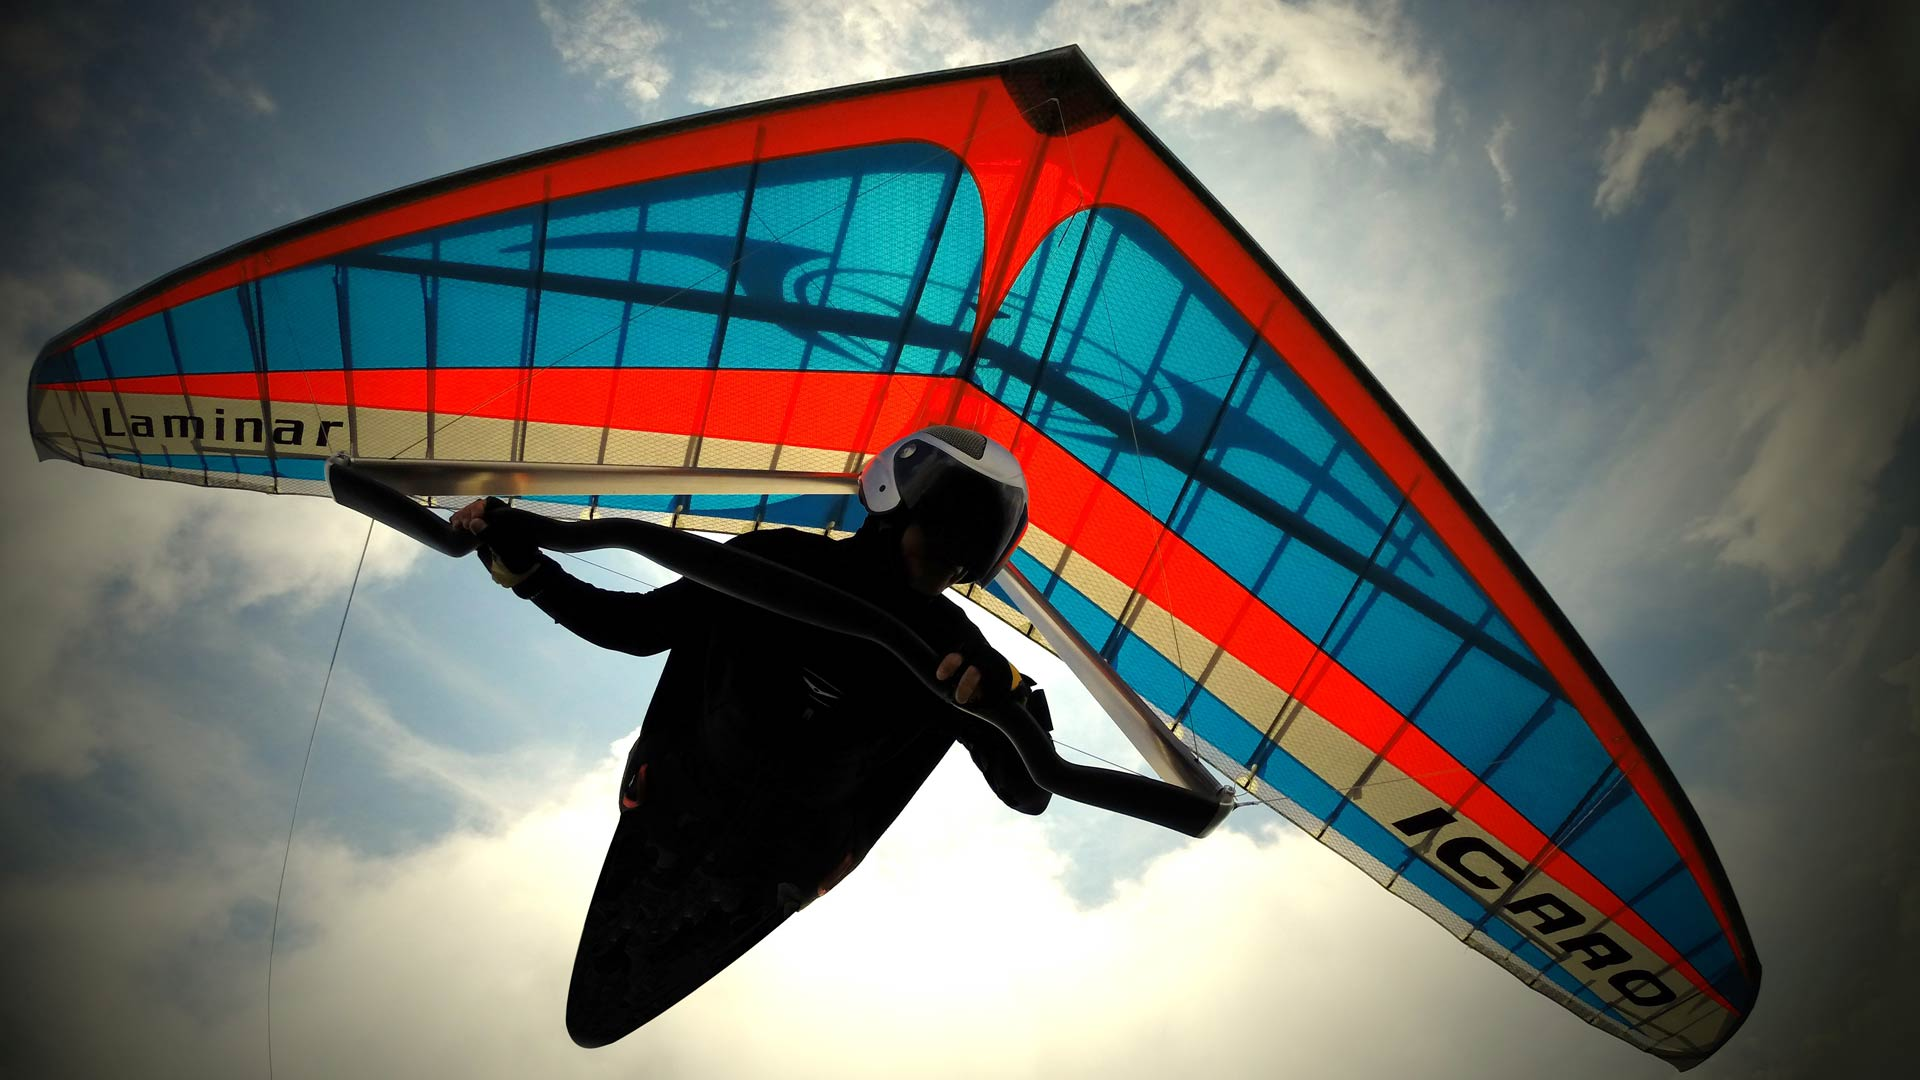 1920x1080 - Hang Gliding Wallpapers 17